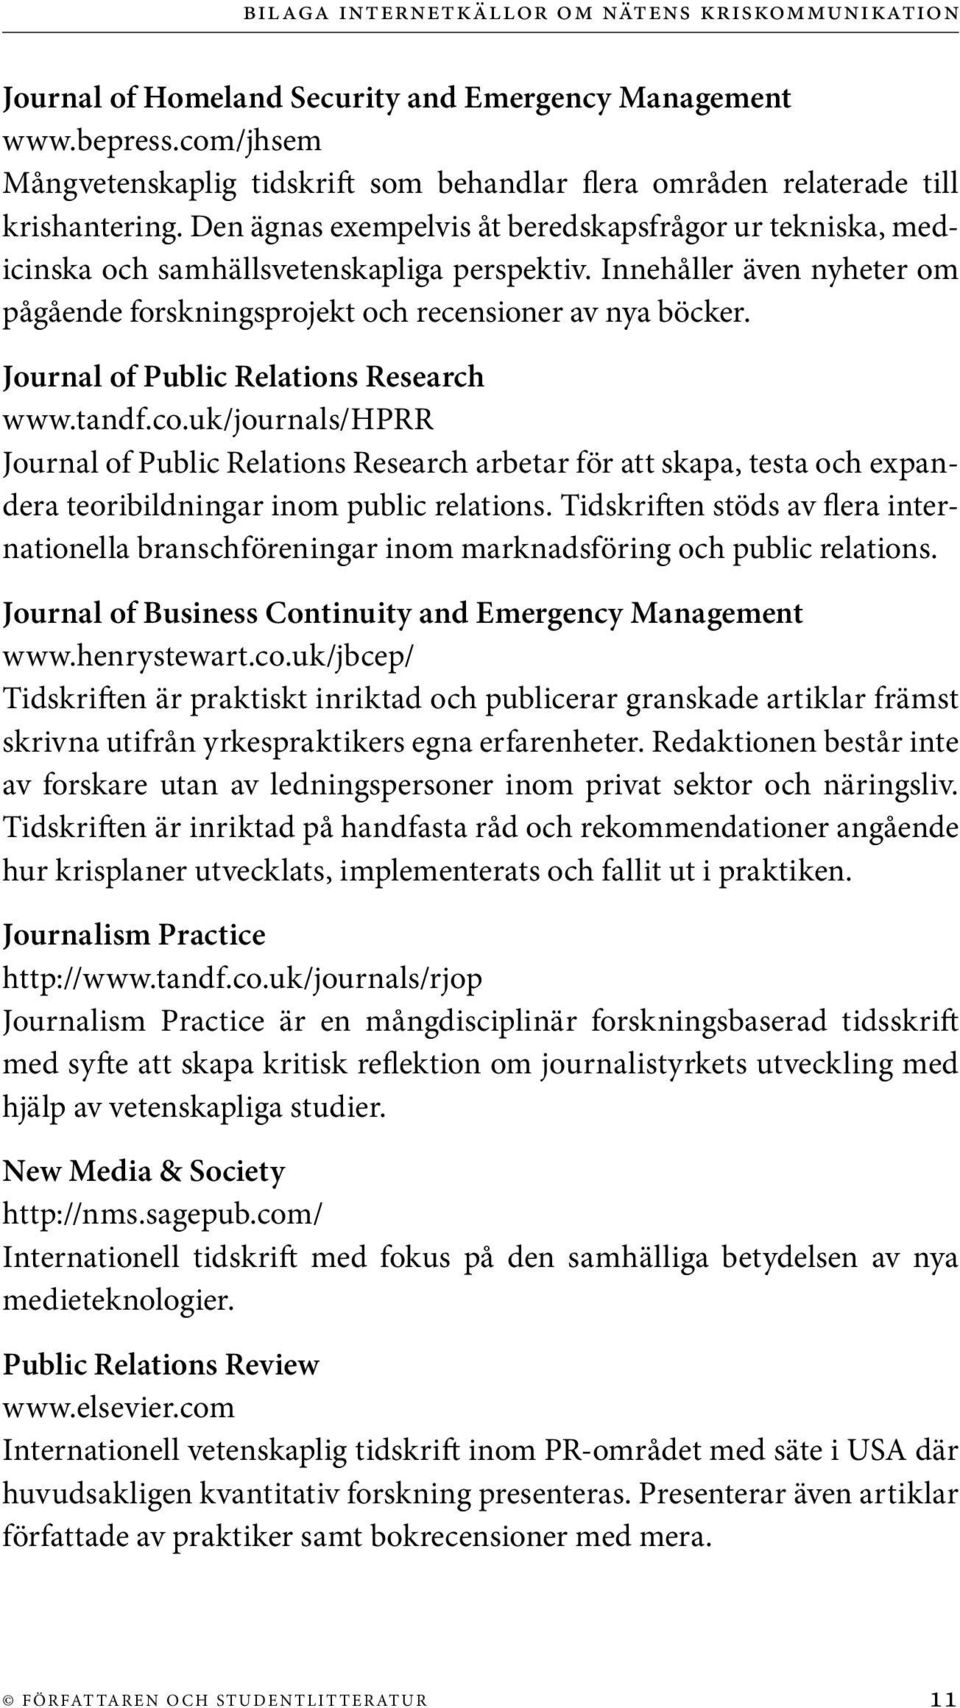 Journal of Public Relations Research www.tandf.co.uk/journals/hprr Journal of Public Relations Research arbetar för att skapa, testa och expandera teoribildningar inom public relations.